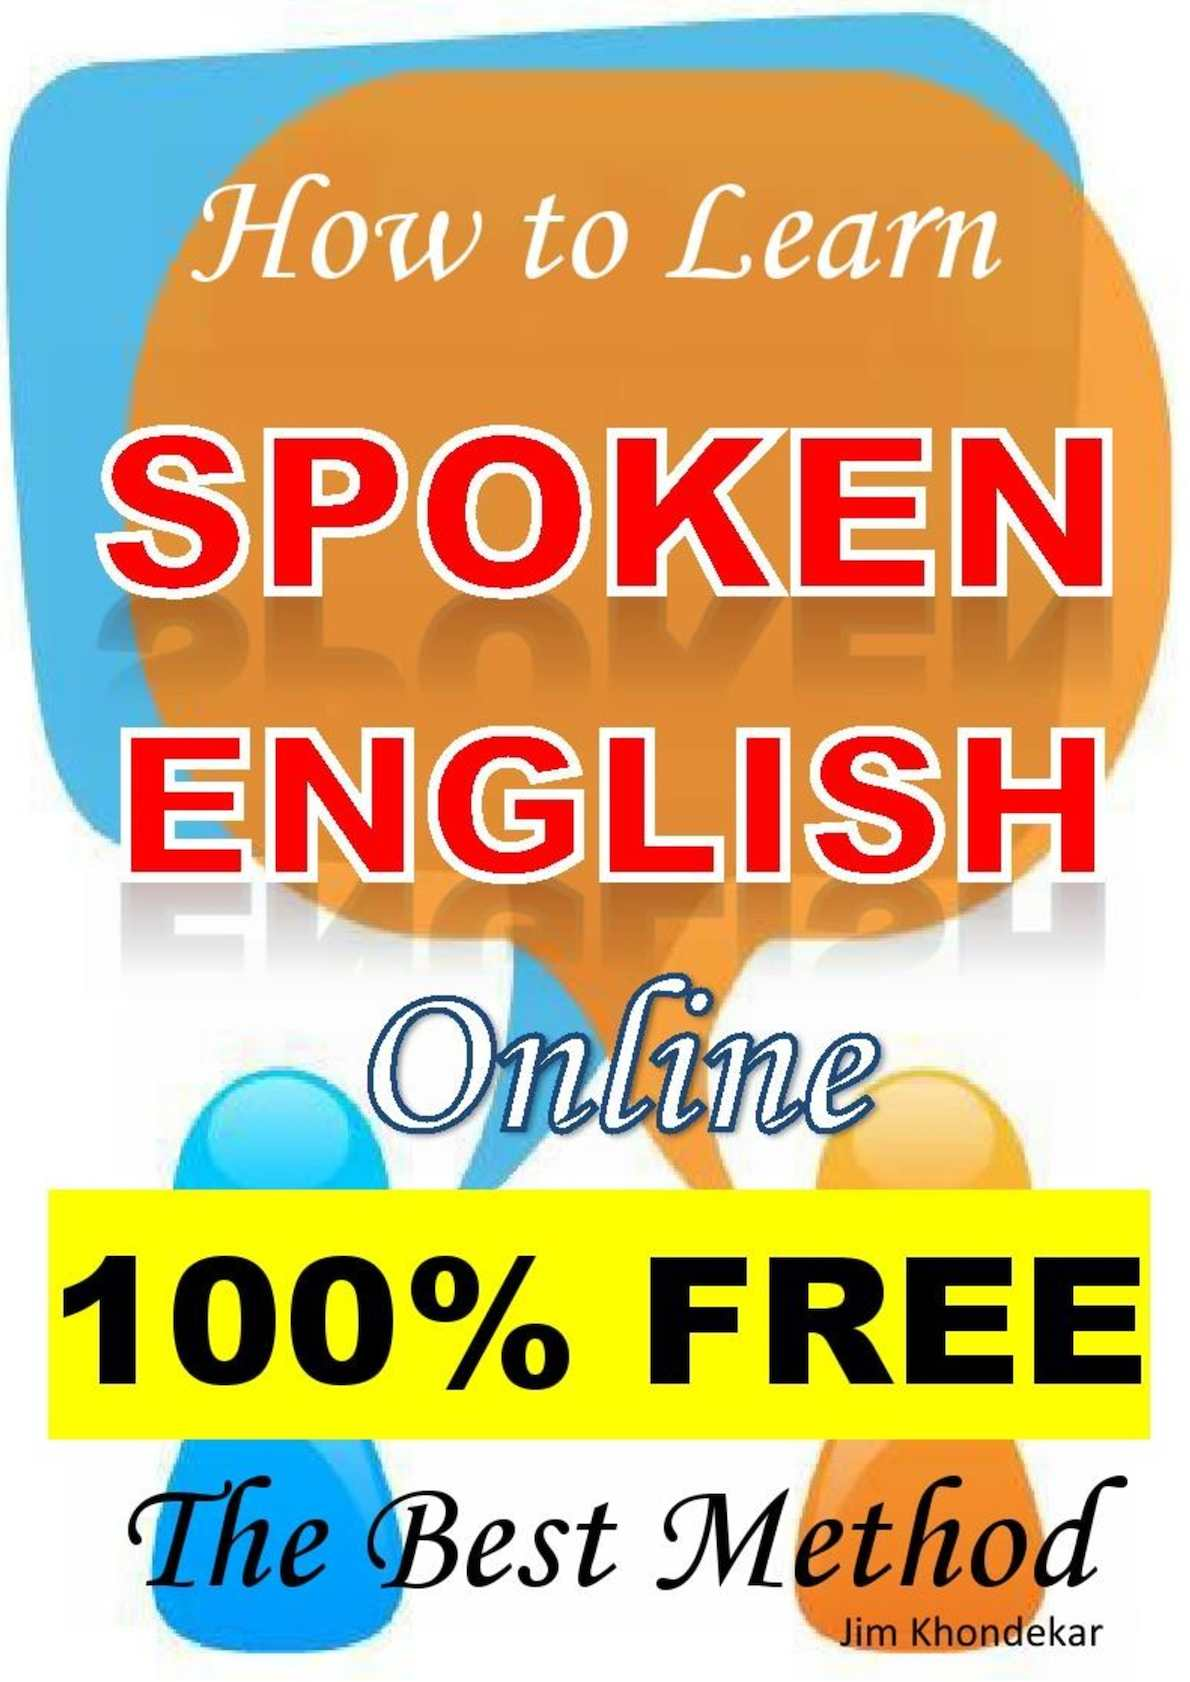 How To Learn Spoken English Online 100% Free The Best Method